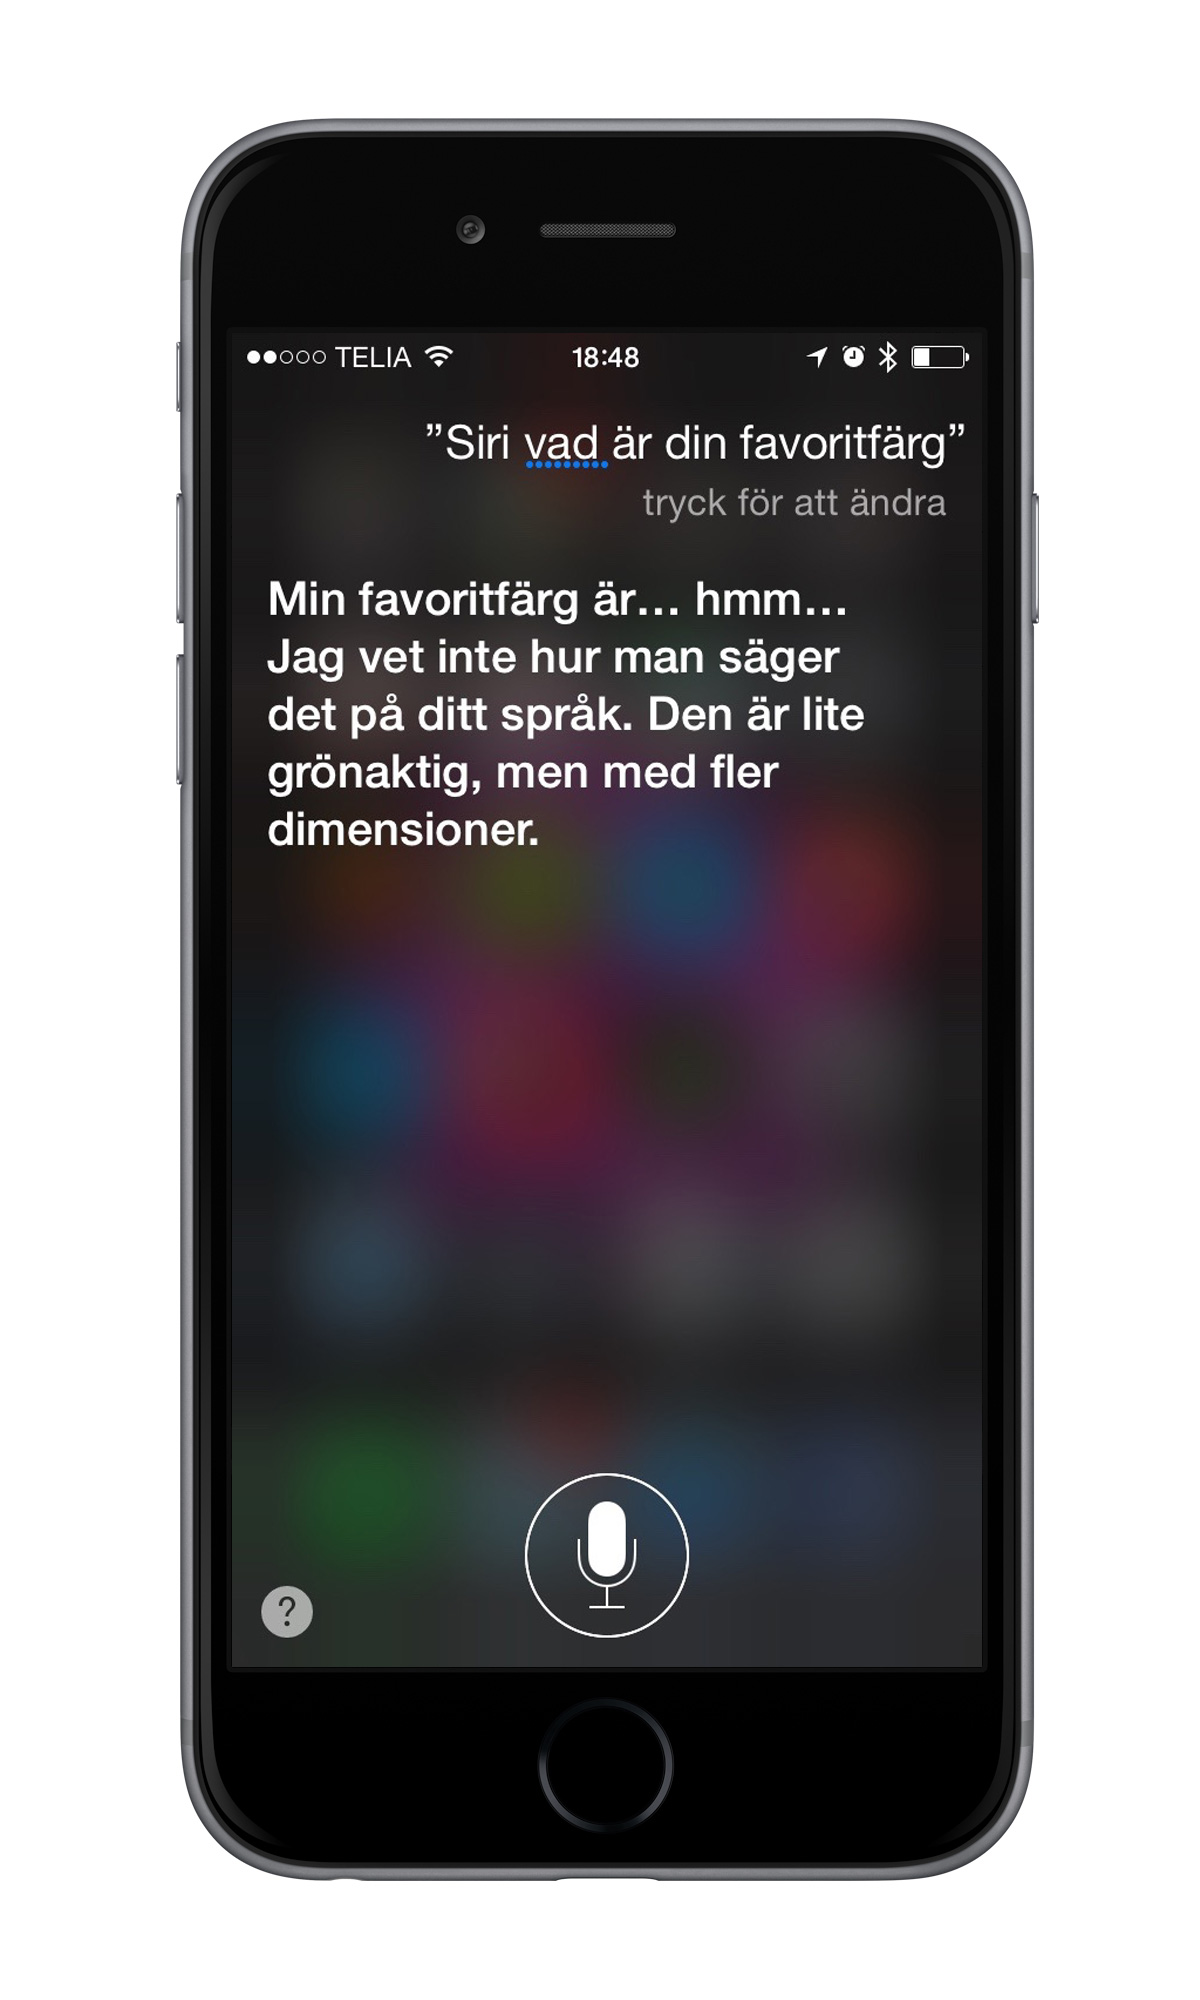 Siri svenska iPhone 6